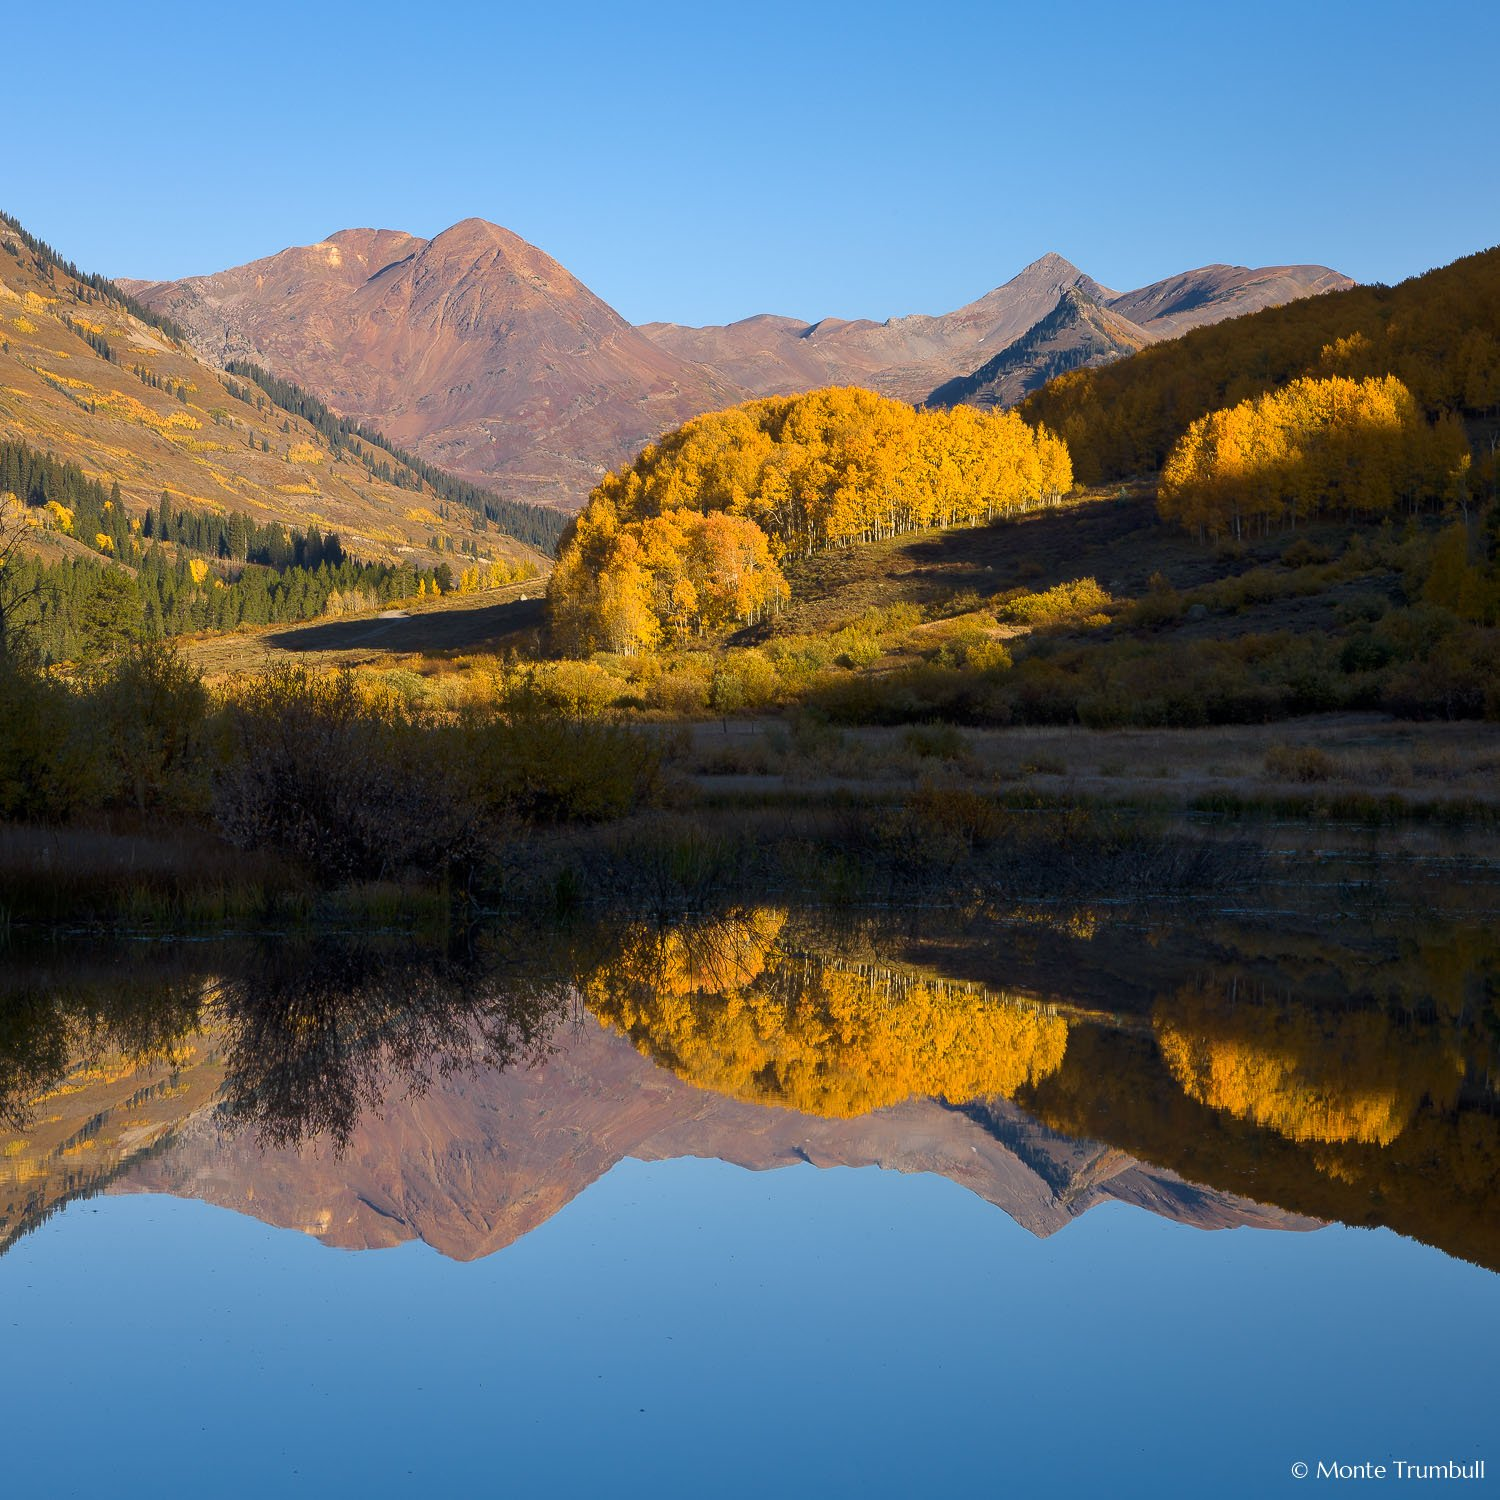 MT-20081002-081504-0031-Colorado-Slate-River-Road-beaver-pond-reflection-fall-colors-Ruby-Range.jpg